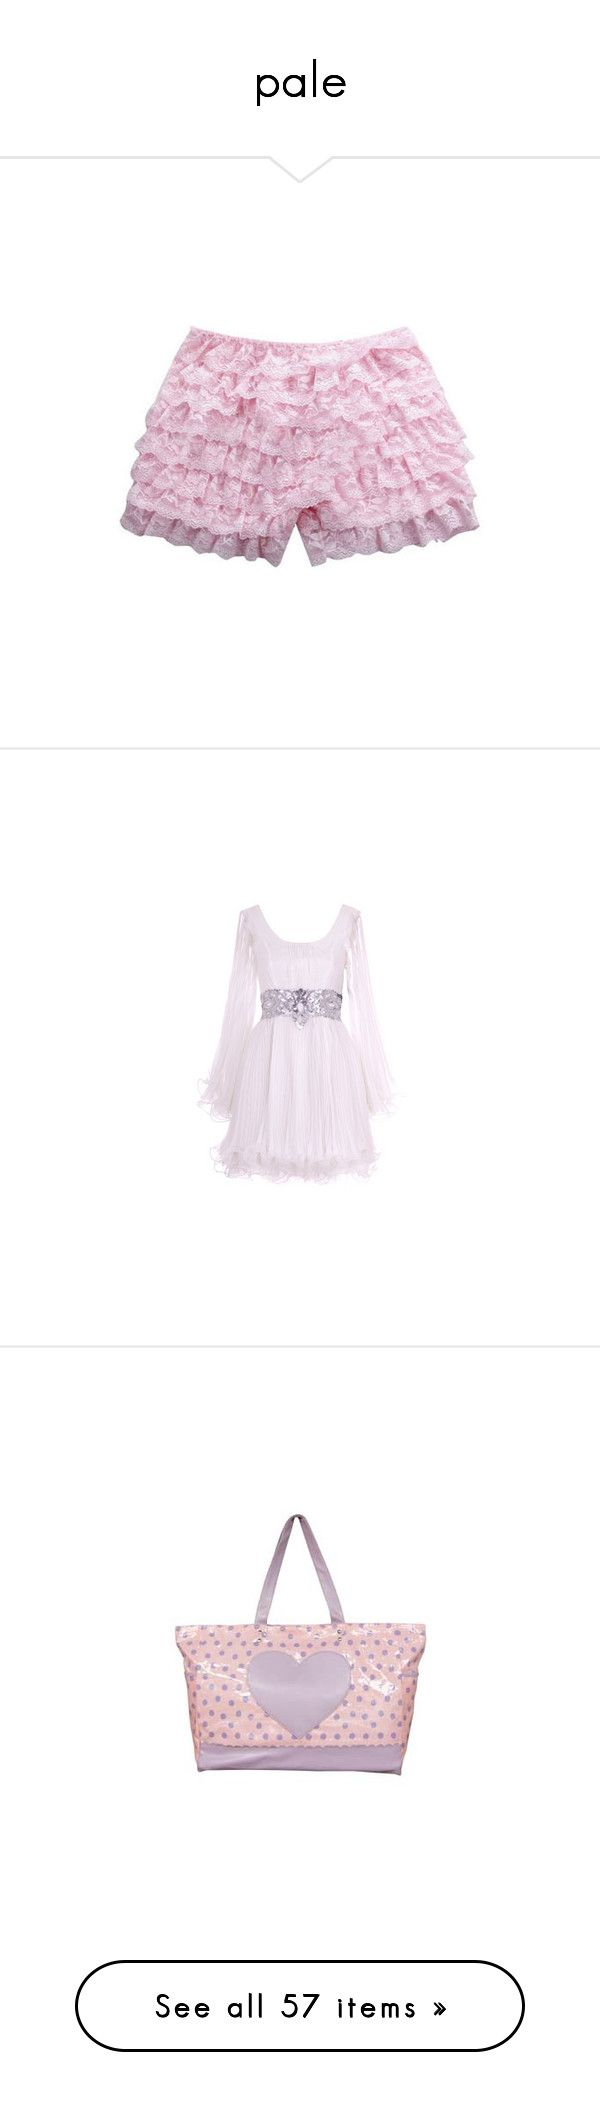 """""""pale"""" by december-woods ❤ liked on Polyvore featuring shorts, bottoms, underwear, kawaii, lacy shorts, pink shorts, pink lace shorts, lace shorts, dresses and vestidos"""